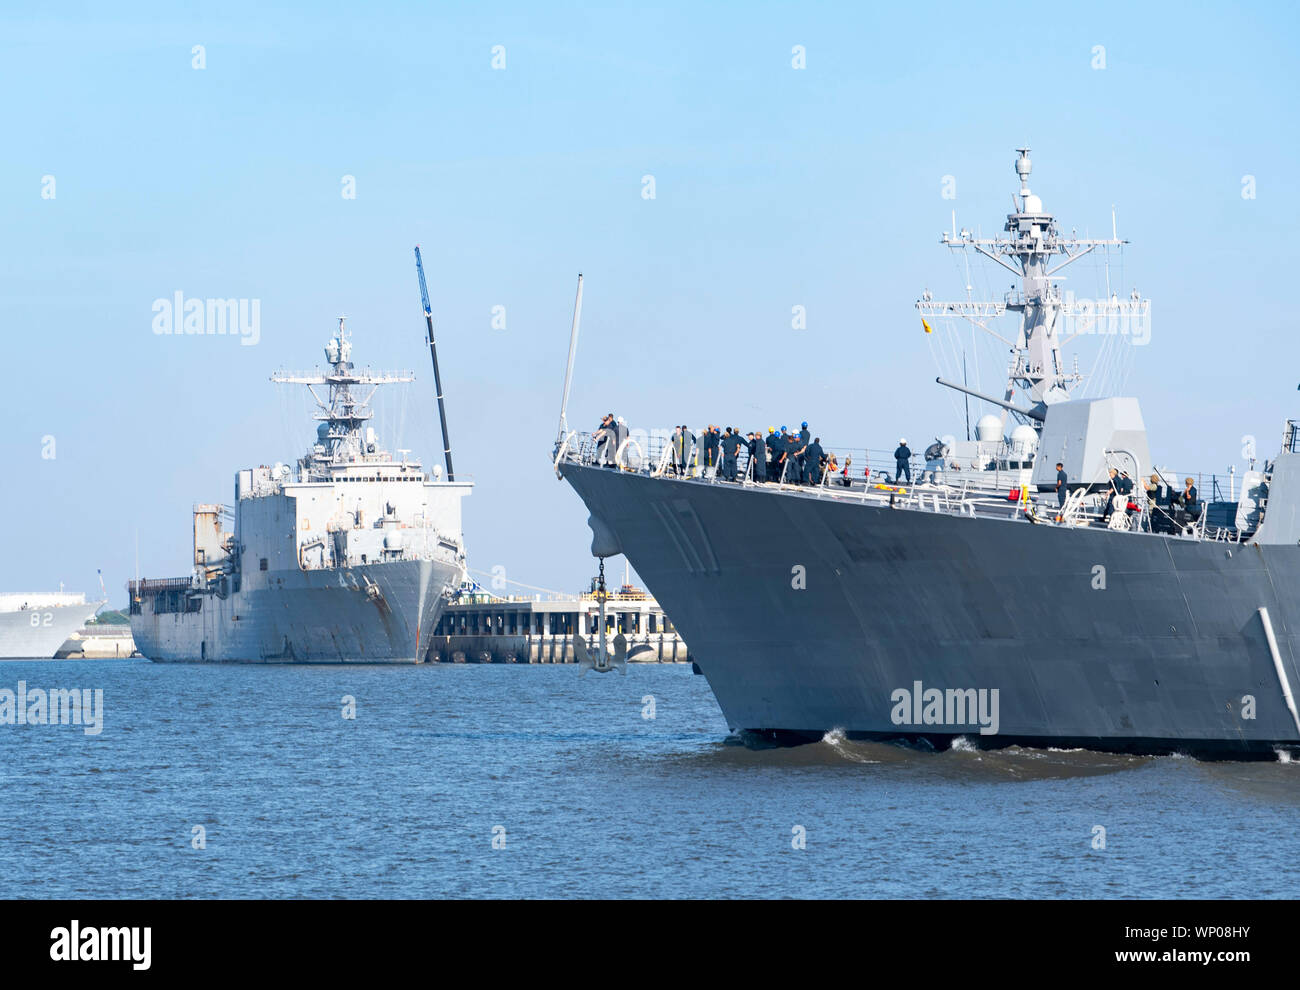 190906-N-DA434-048    JACKSONVILLE, Fla. (Sept. 6, 2019) The Arleigh Burke-class guided-missile destroyer USS Paul Ignatius (DDG 117) returns to Naval Station Mayport. Commander, U.S. 4th Fleet ordered all U.S. Navy ships homeported at Naval Station Mayport to sortie ahead of Hurricane Dorian on Aug. 30, 2019. Dorian brought high winds and heavy rain to the area.  (U.S. Navy photo by Mass Communication Specialist 3rd Class Alana Langdon/Released) Stock Photo